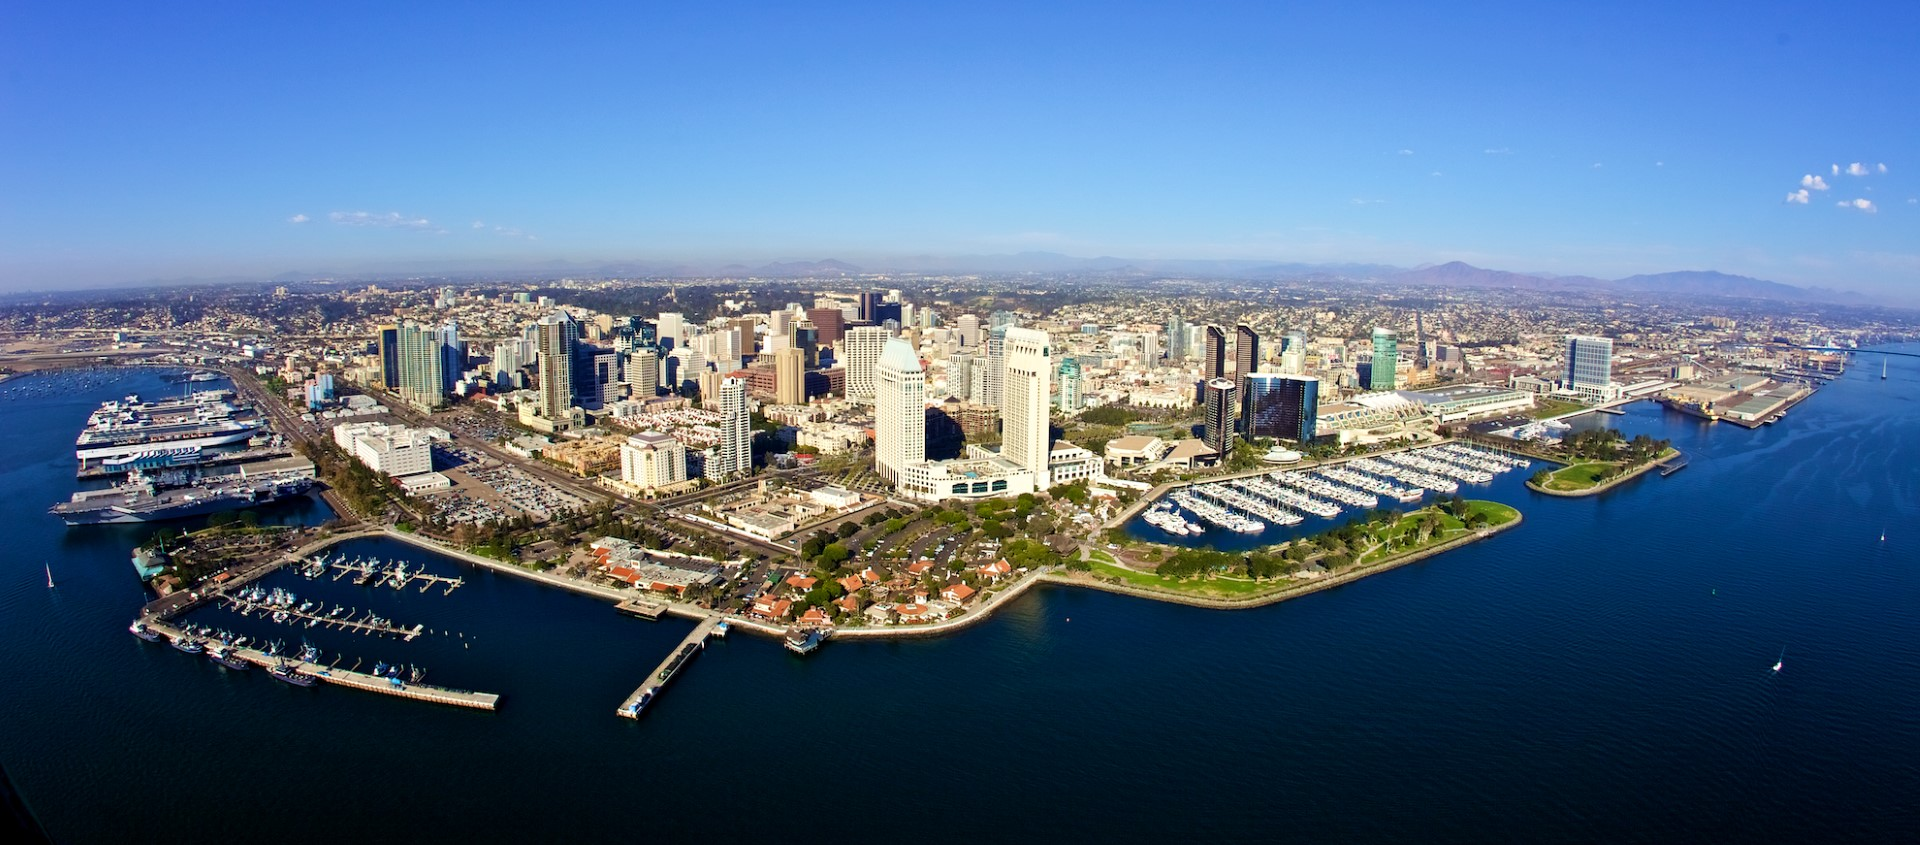 Panorama aerial view of San Diego from the bay